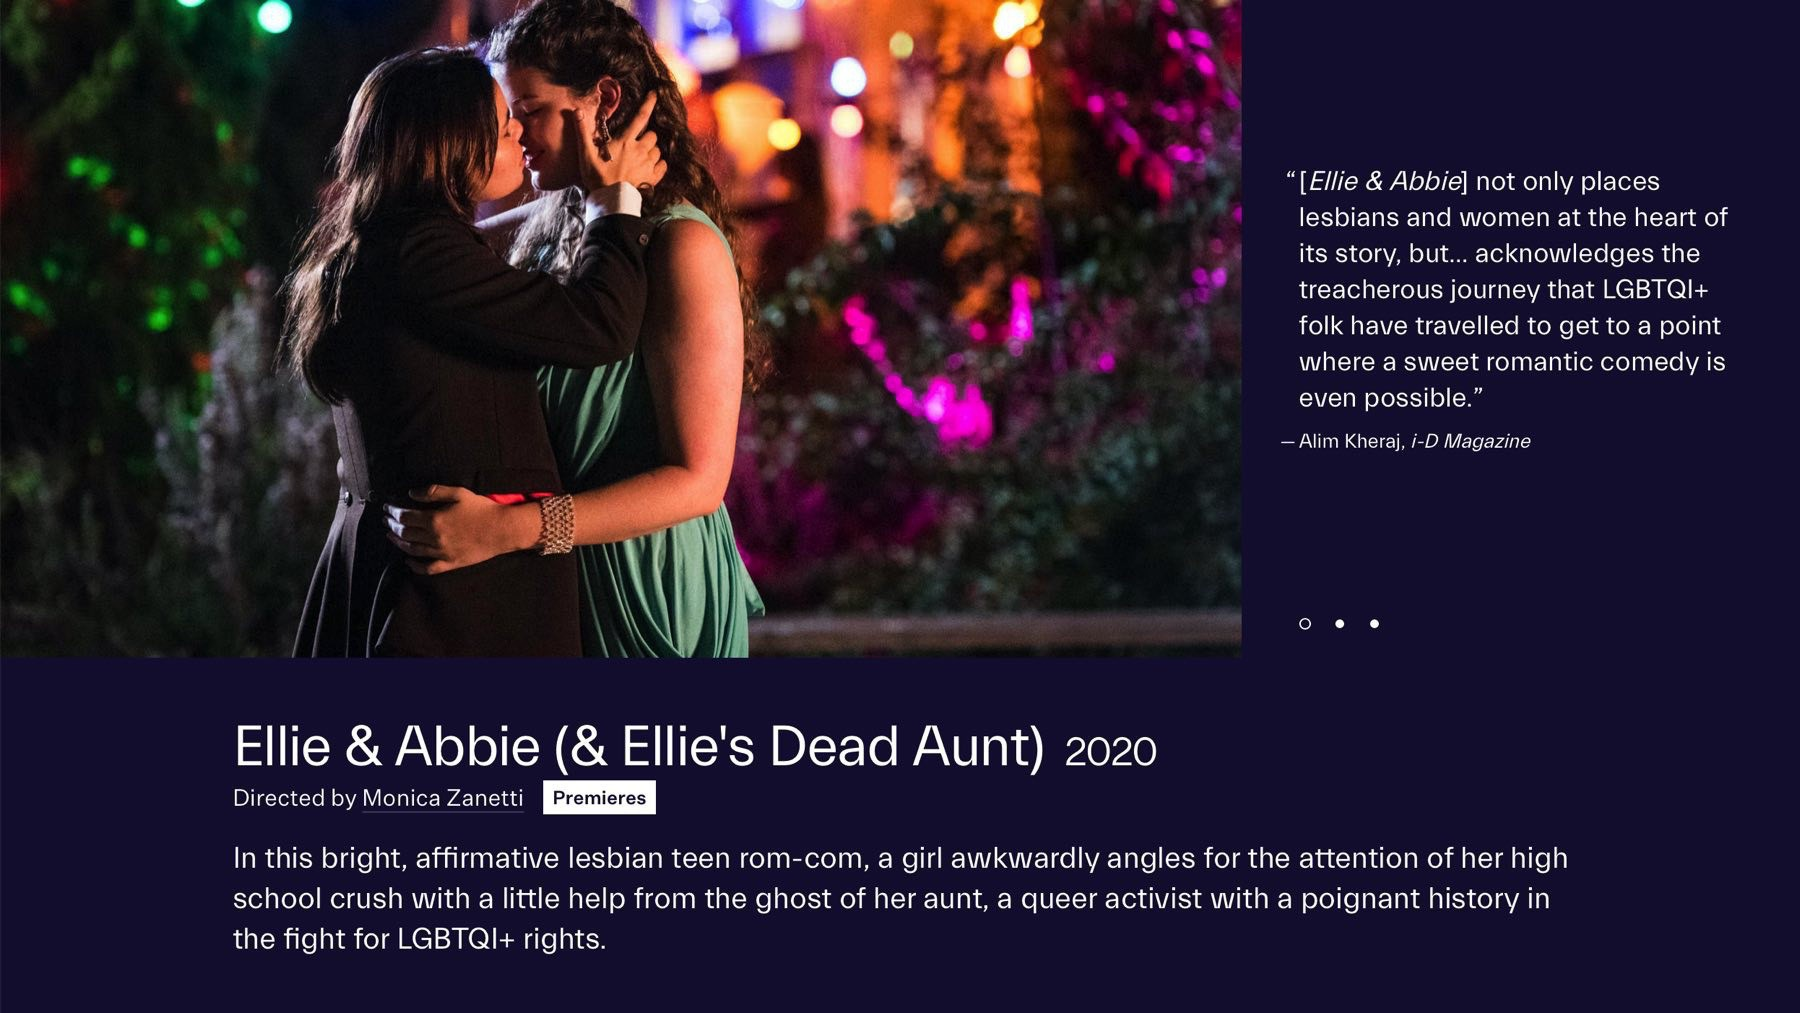 Movie photo and image on Festival web page.